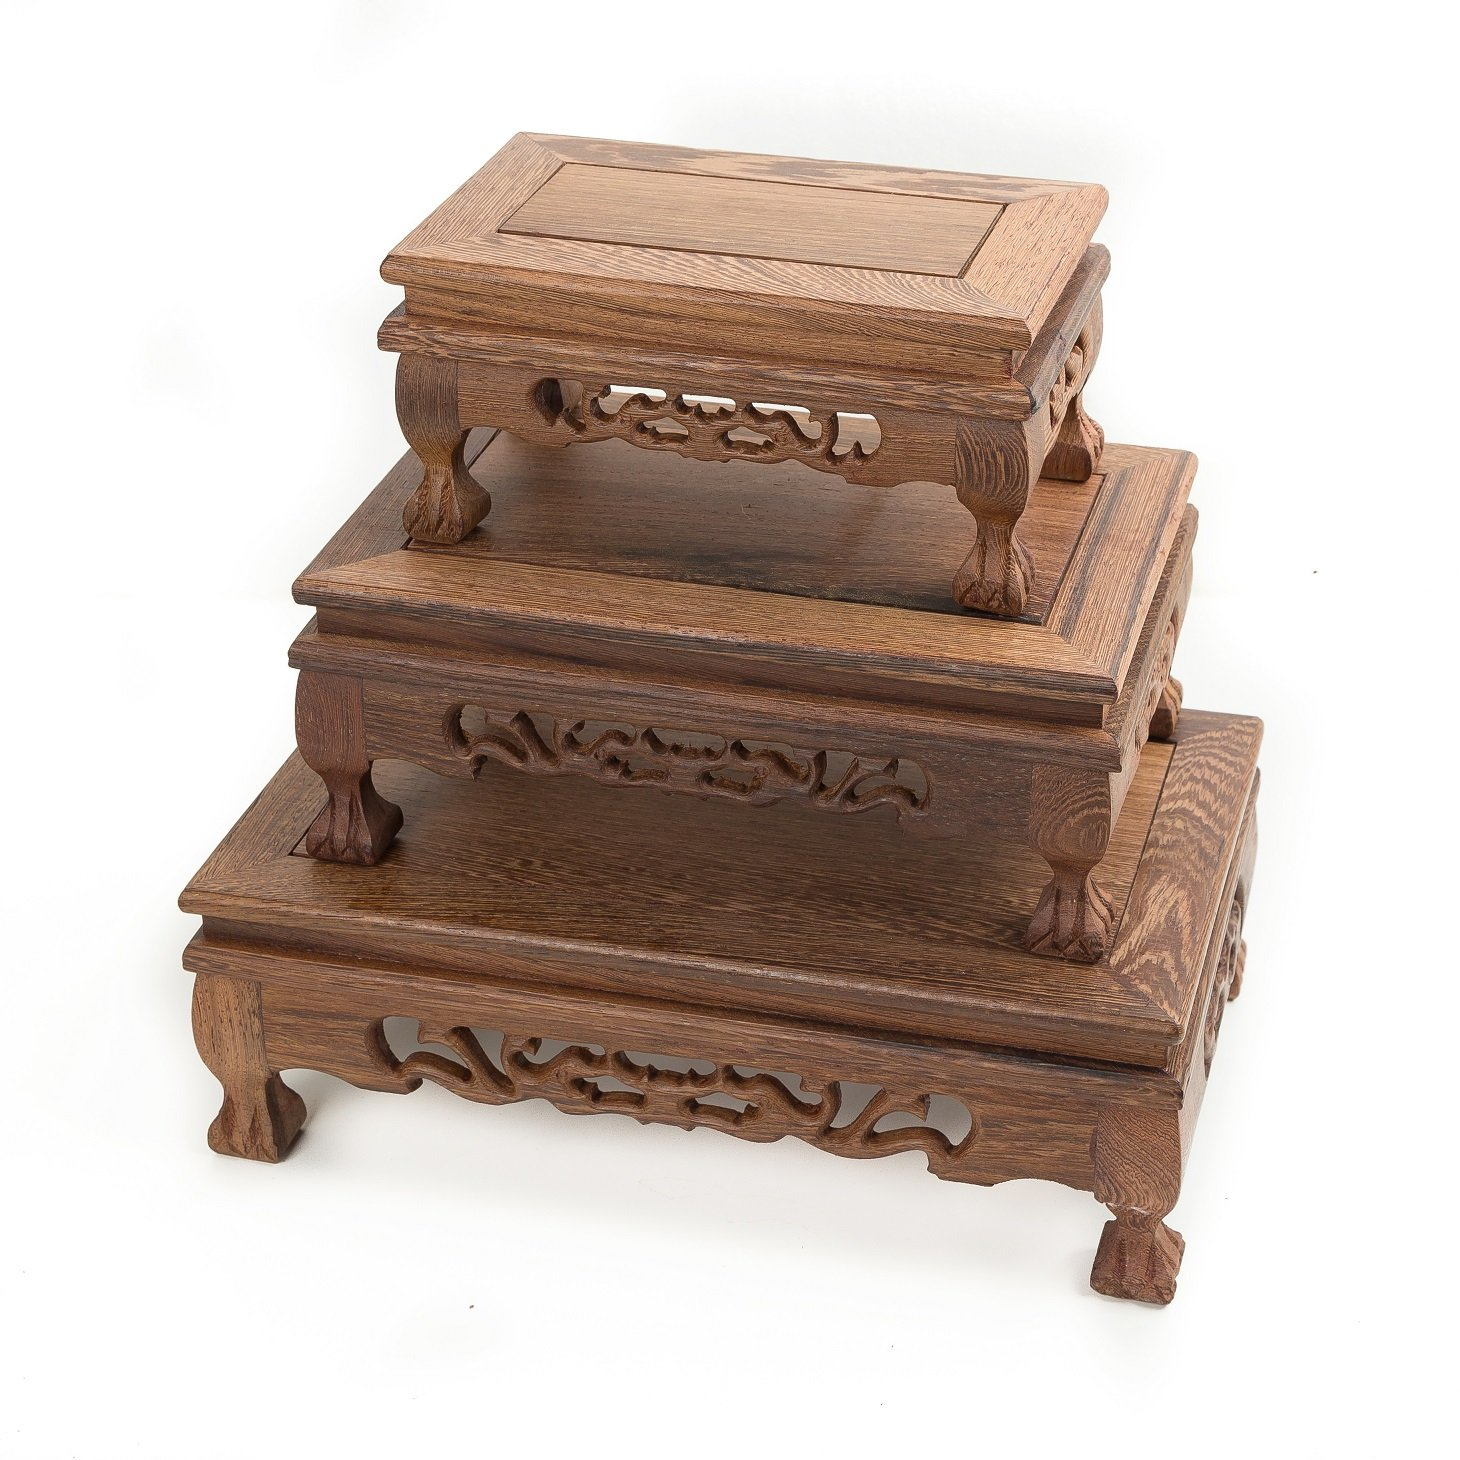 LuoLuo Chinese Display Stand Wooden Rectangle Shape Tiger Feet Carved Solid Rosewood JiChi Wood Display Base Holder For Arts Antique Etc, Home Decoration (S 18.5cm11cm9cm) by LuoLuo (Image #7)